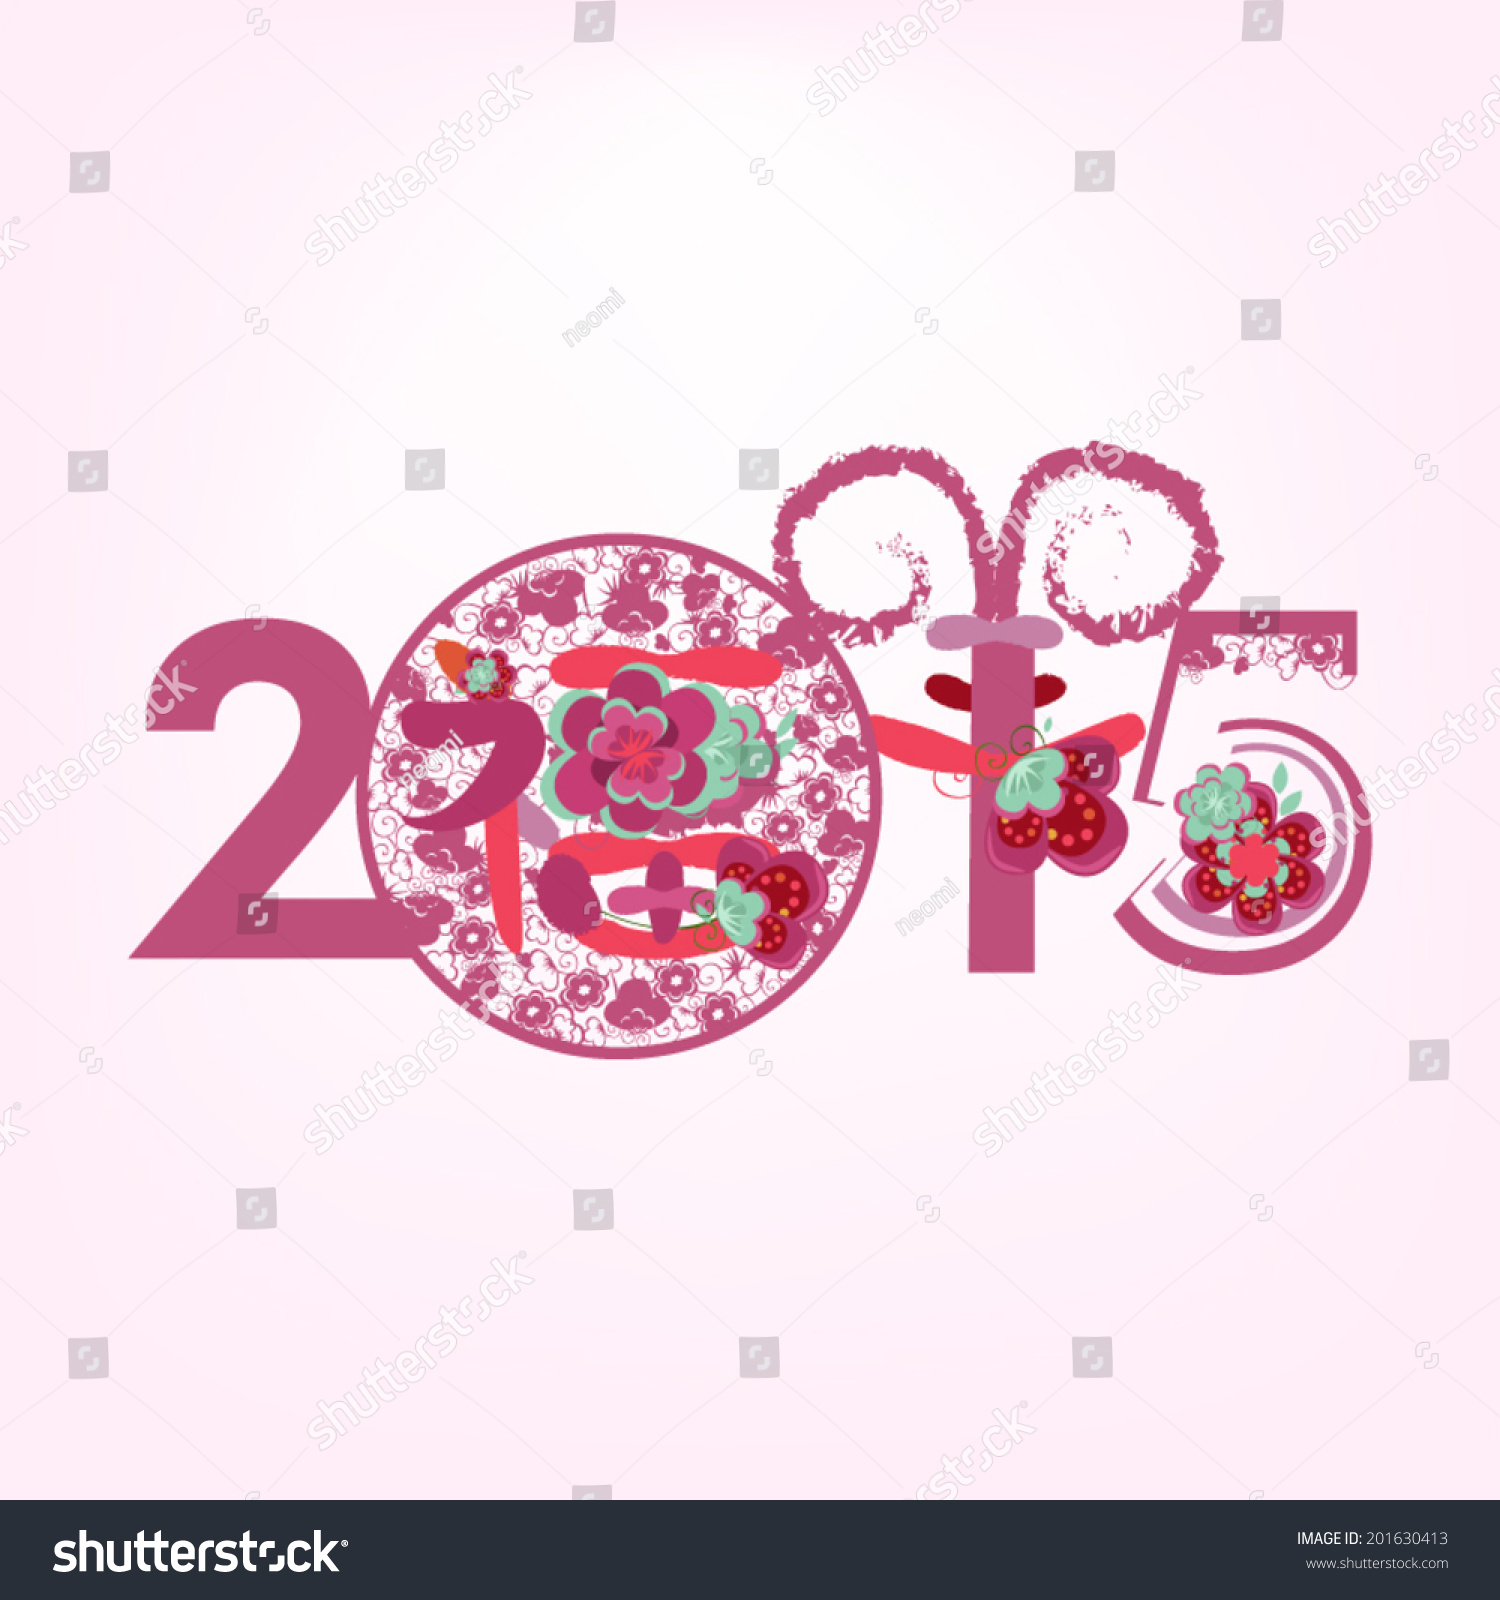 colorful typography design for lunar new yearchinese new year 2015 greeting on floral background - Chinese Lunar New Year 2015